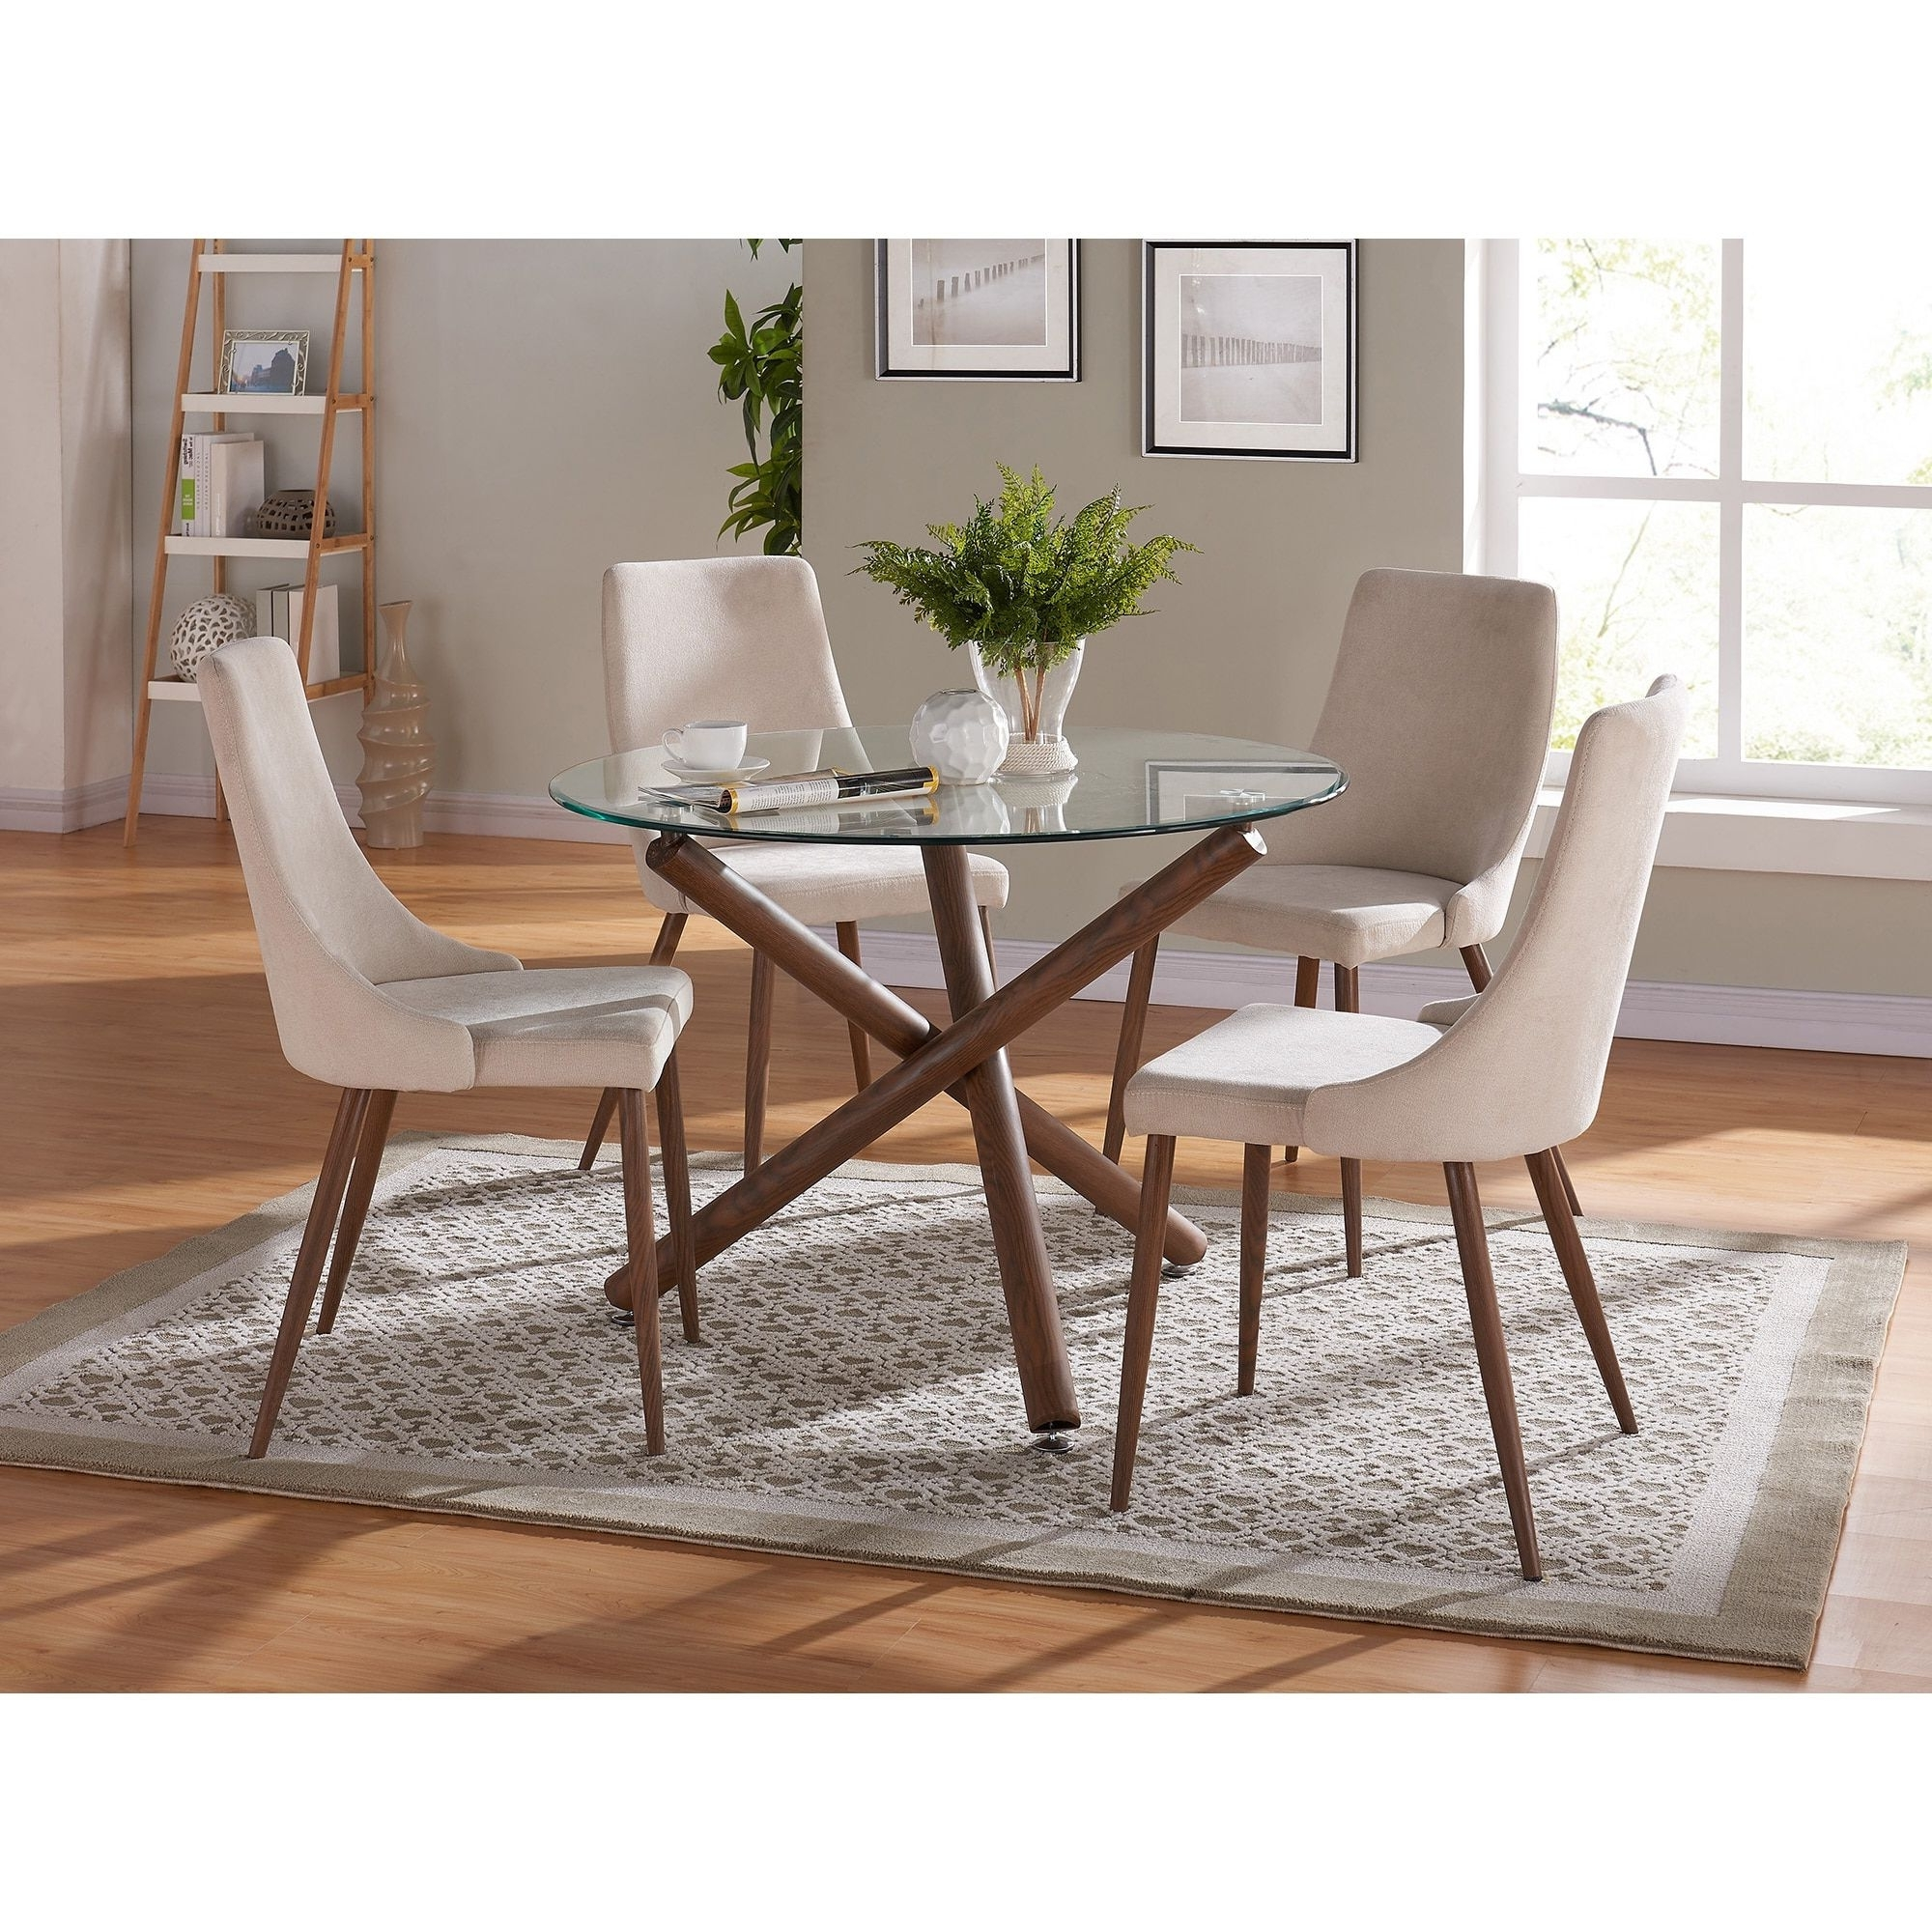 Dining Chairs, Fabric Dining Room Chairs: Make Mealtimes More inside Current Fabric Dining Room Chairs